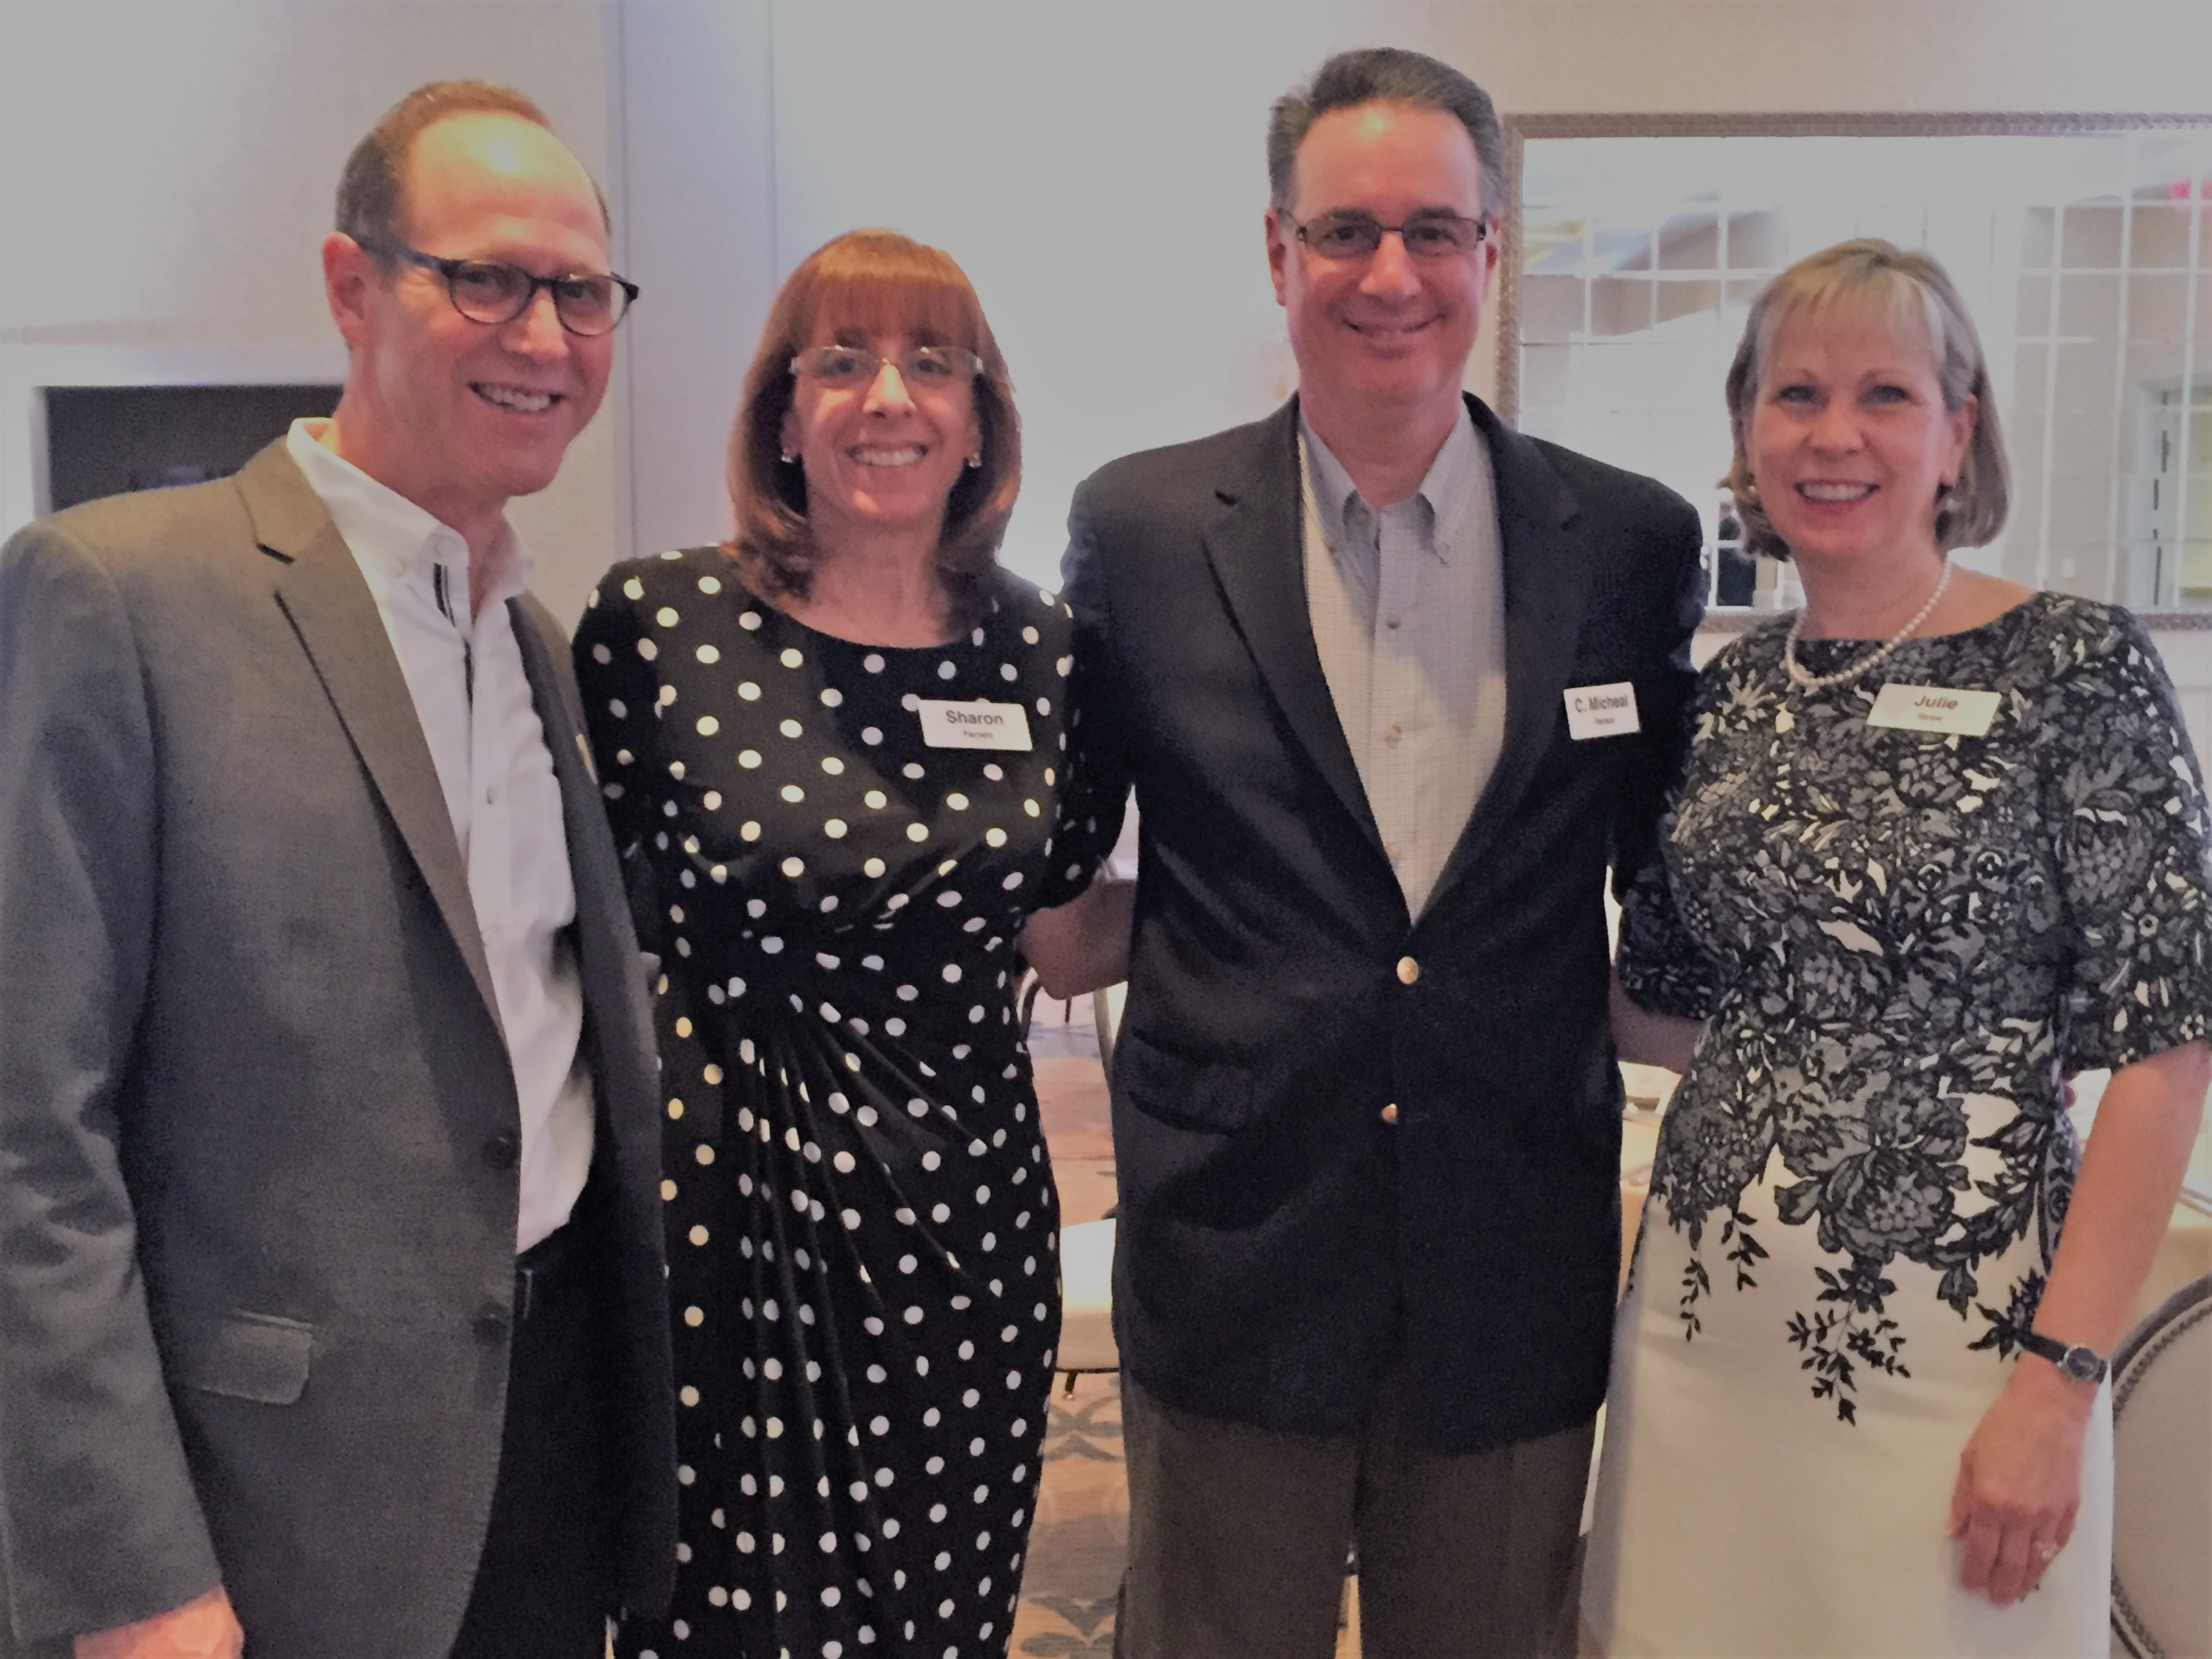 Sharon and C. Michael Ferraro (center) with Wiley senior leadership.